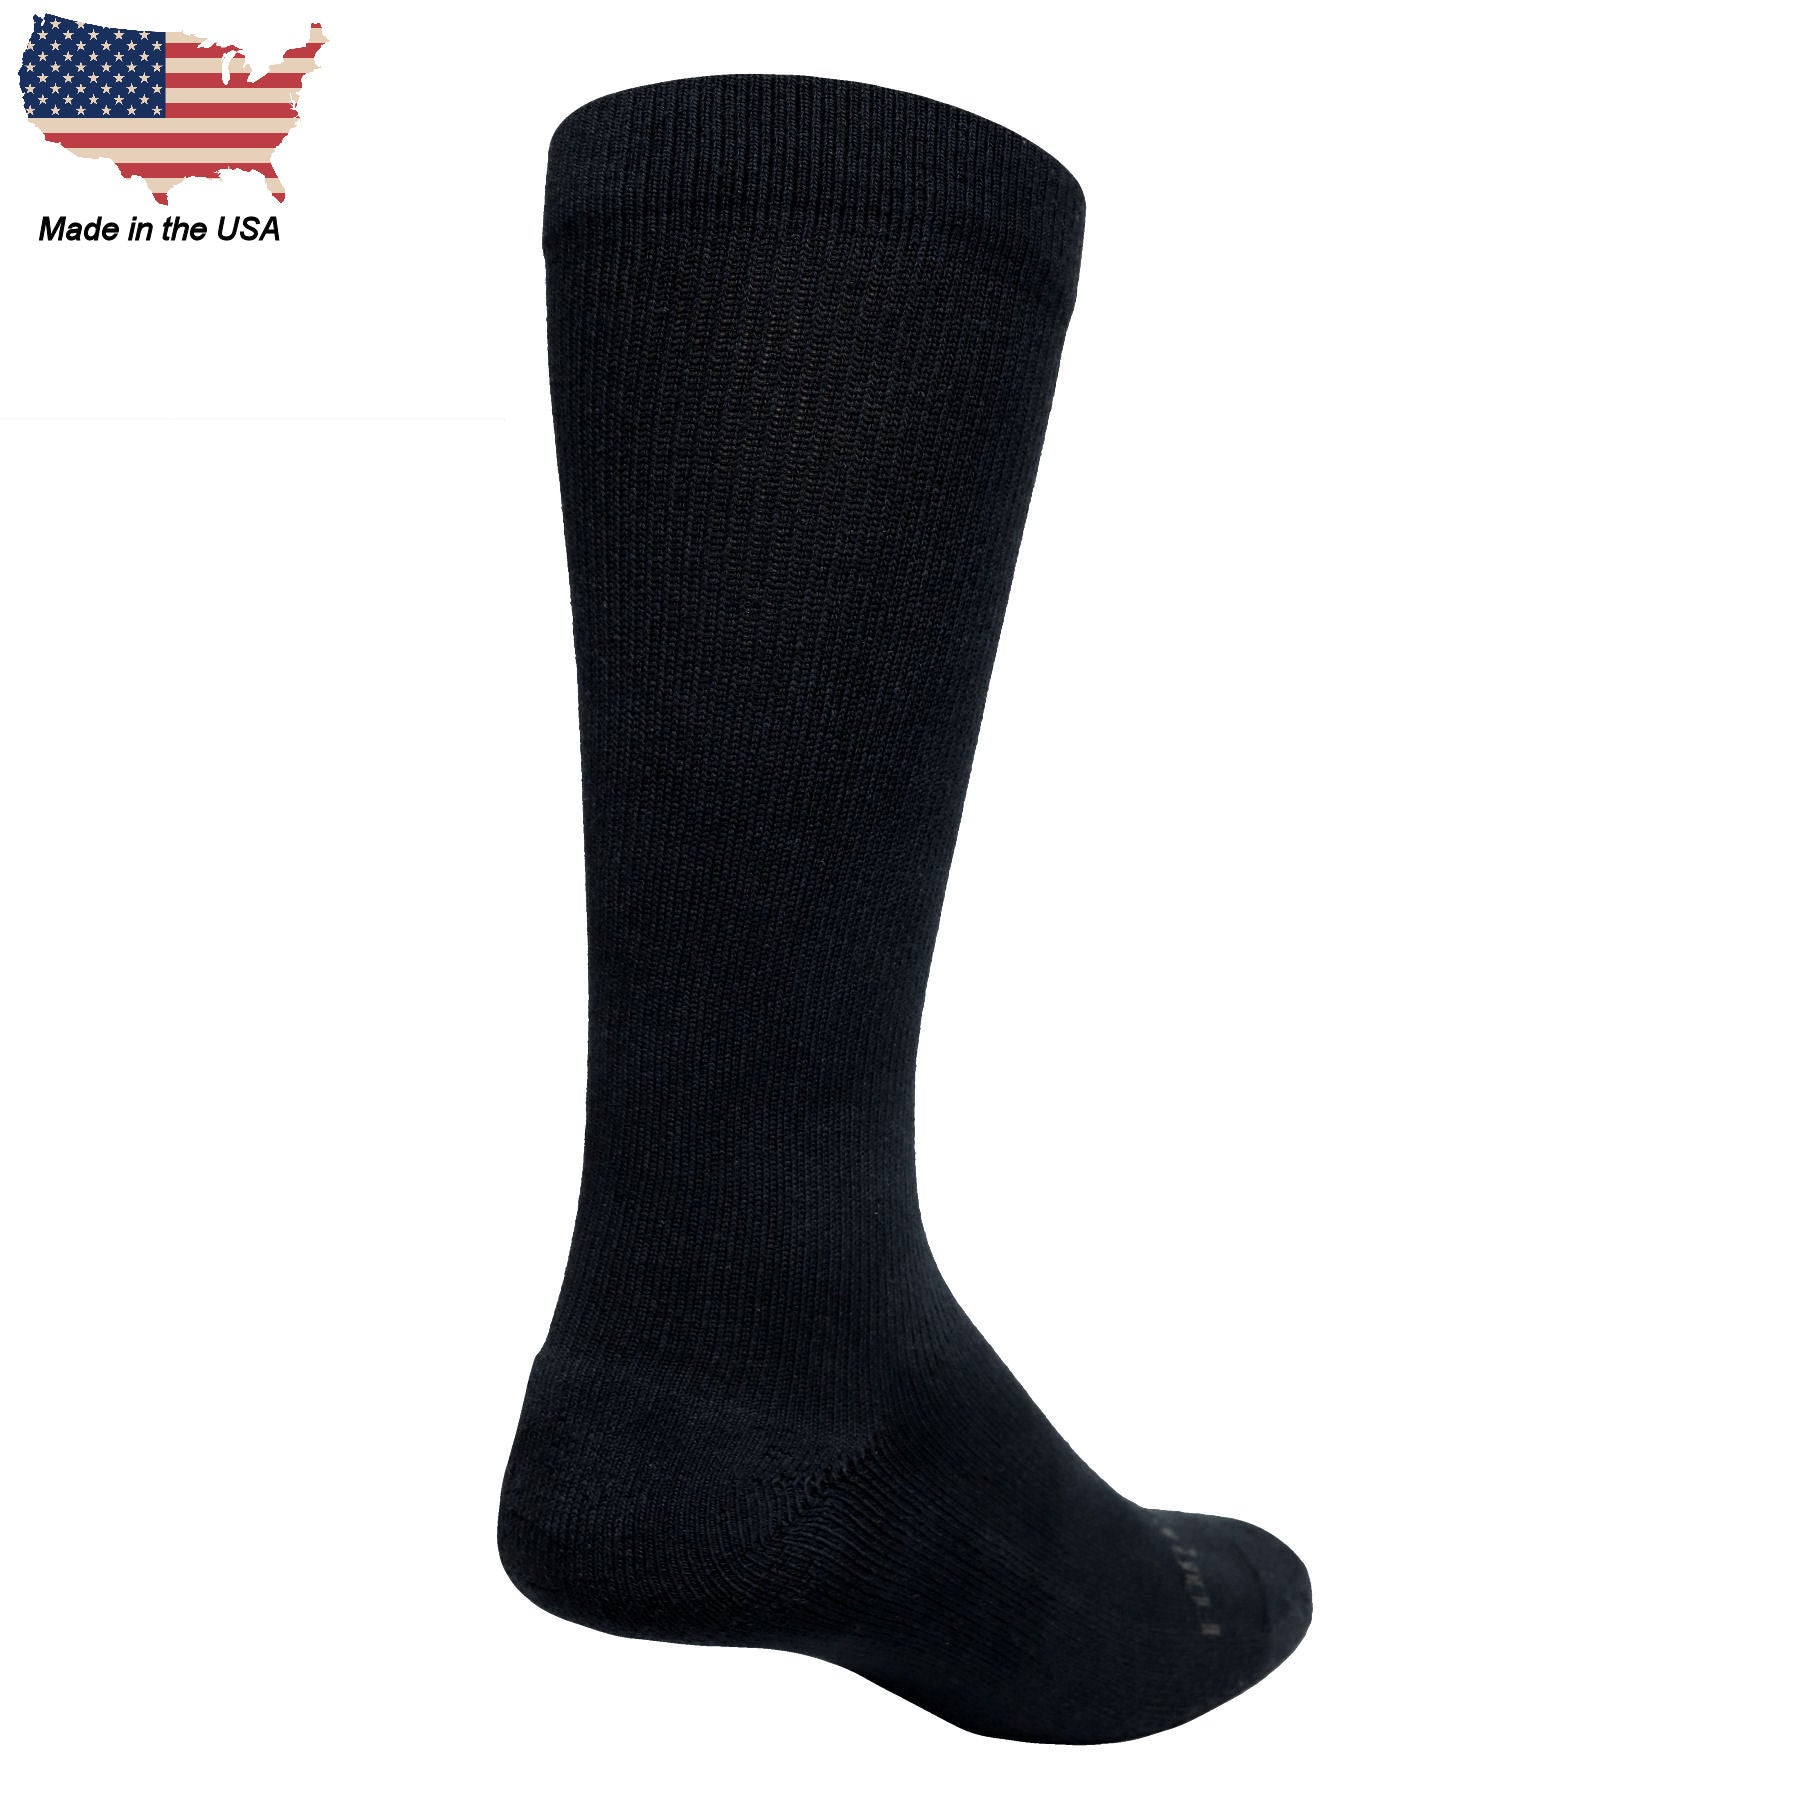 Foot Comfort Graduated Compression Black OTC Socks